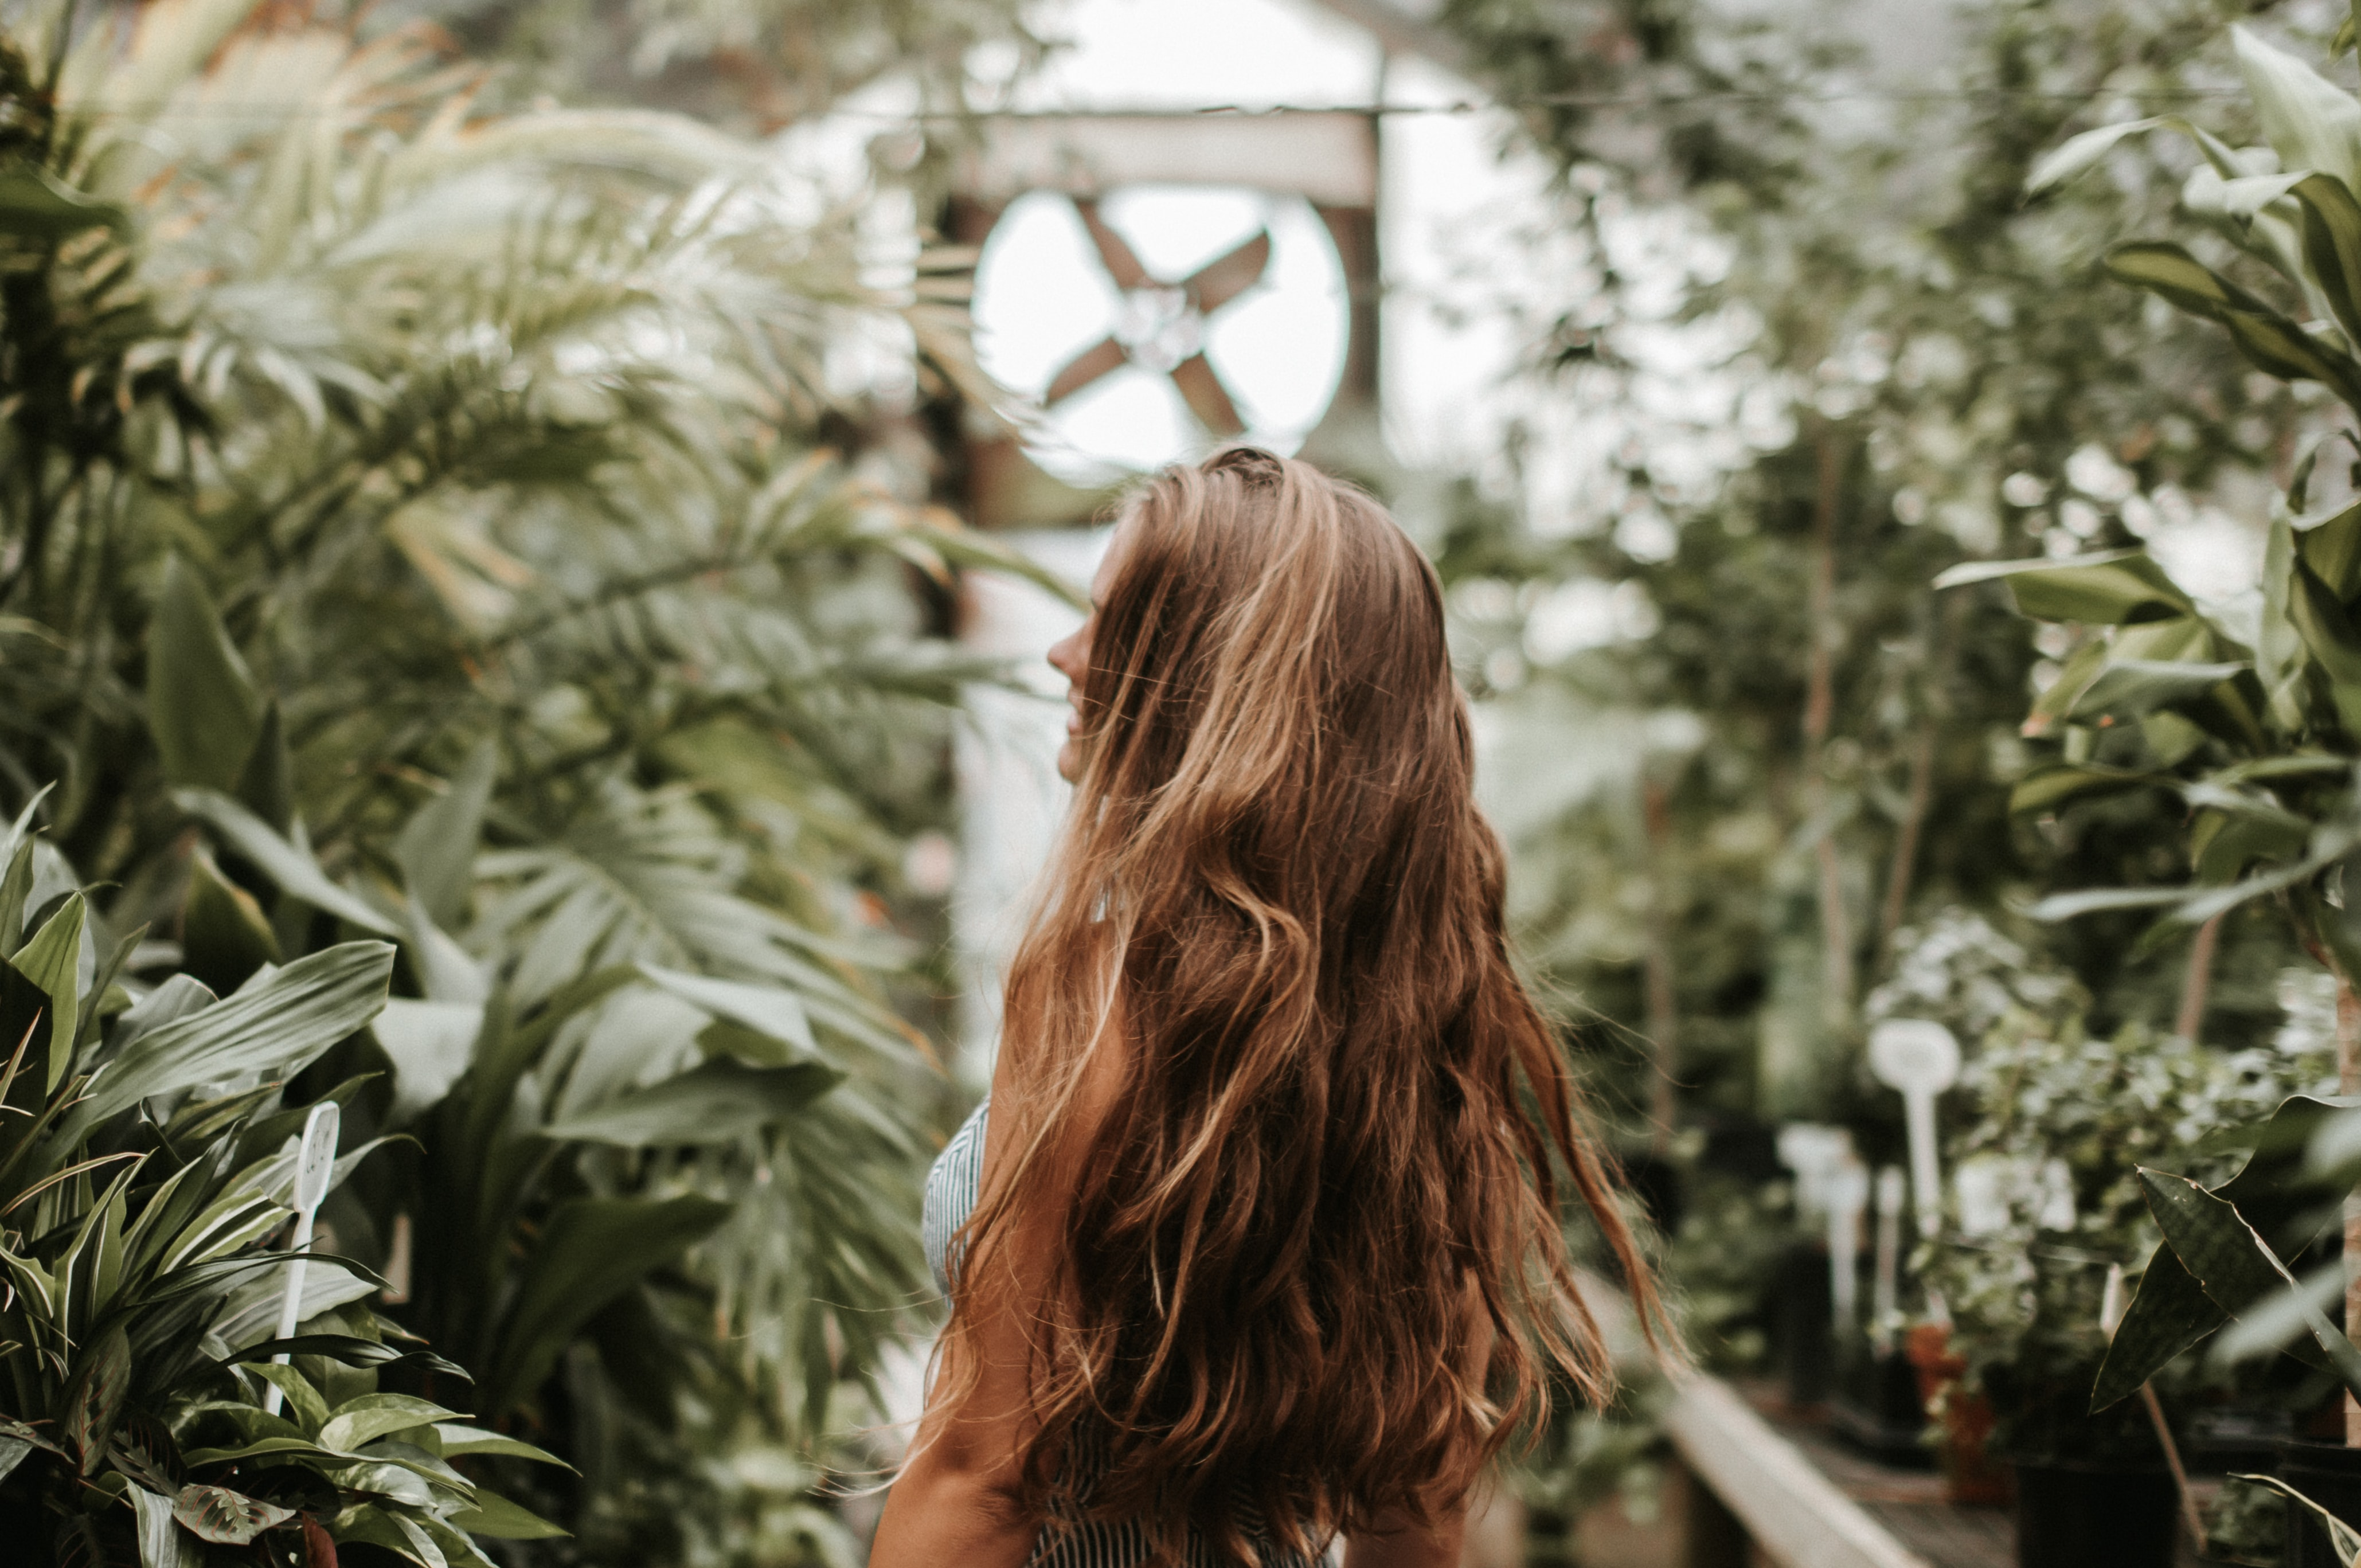 woman with strawberry blonde hair walking in the middle of green plants